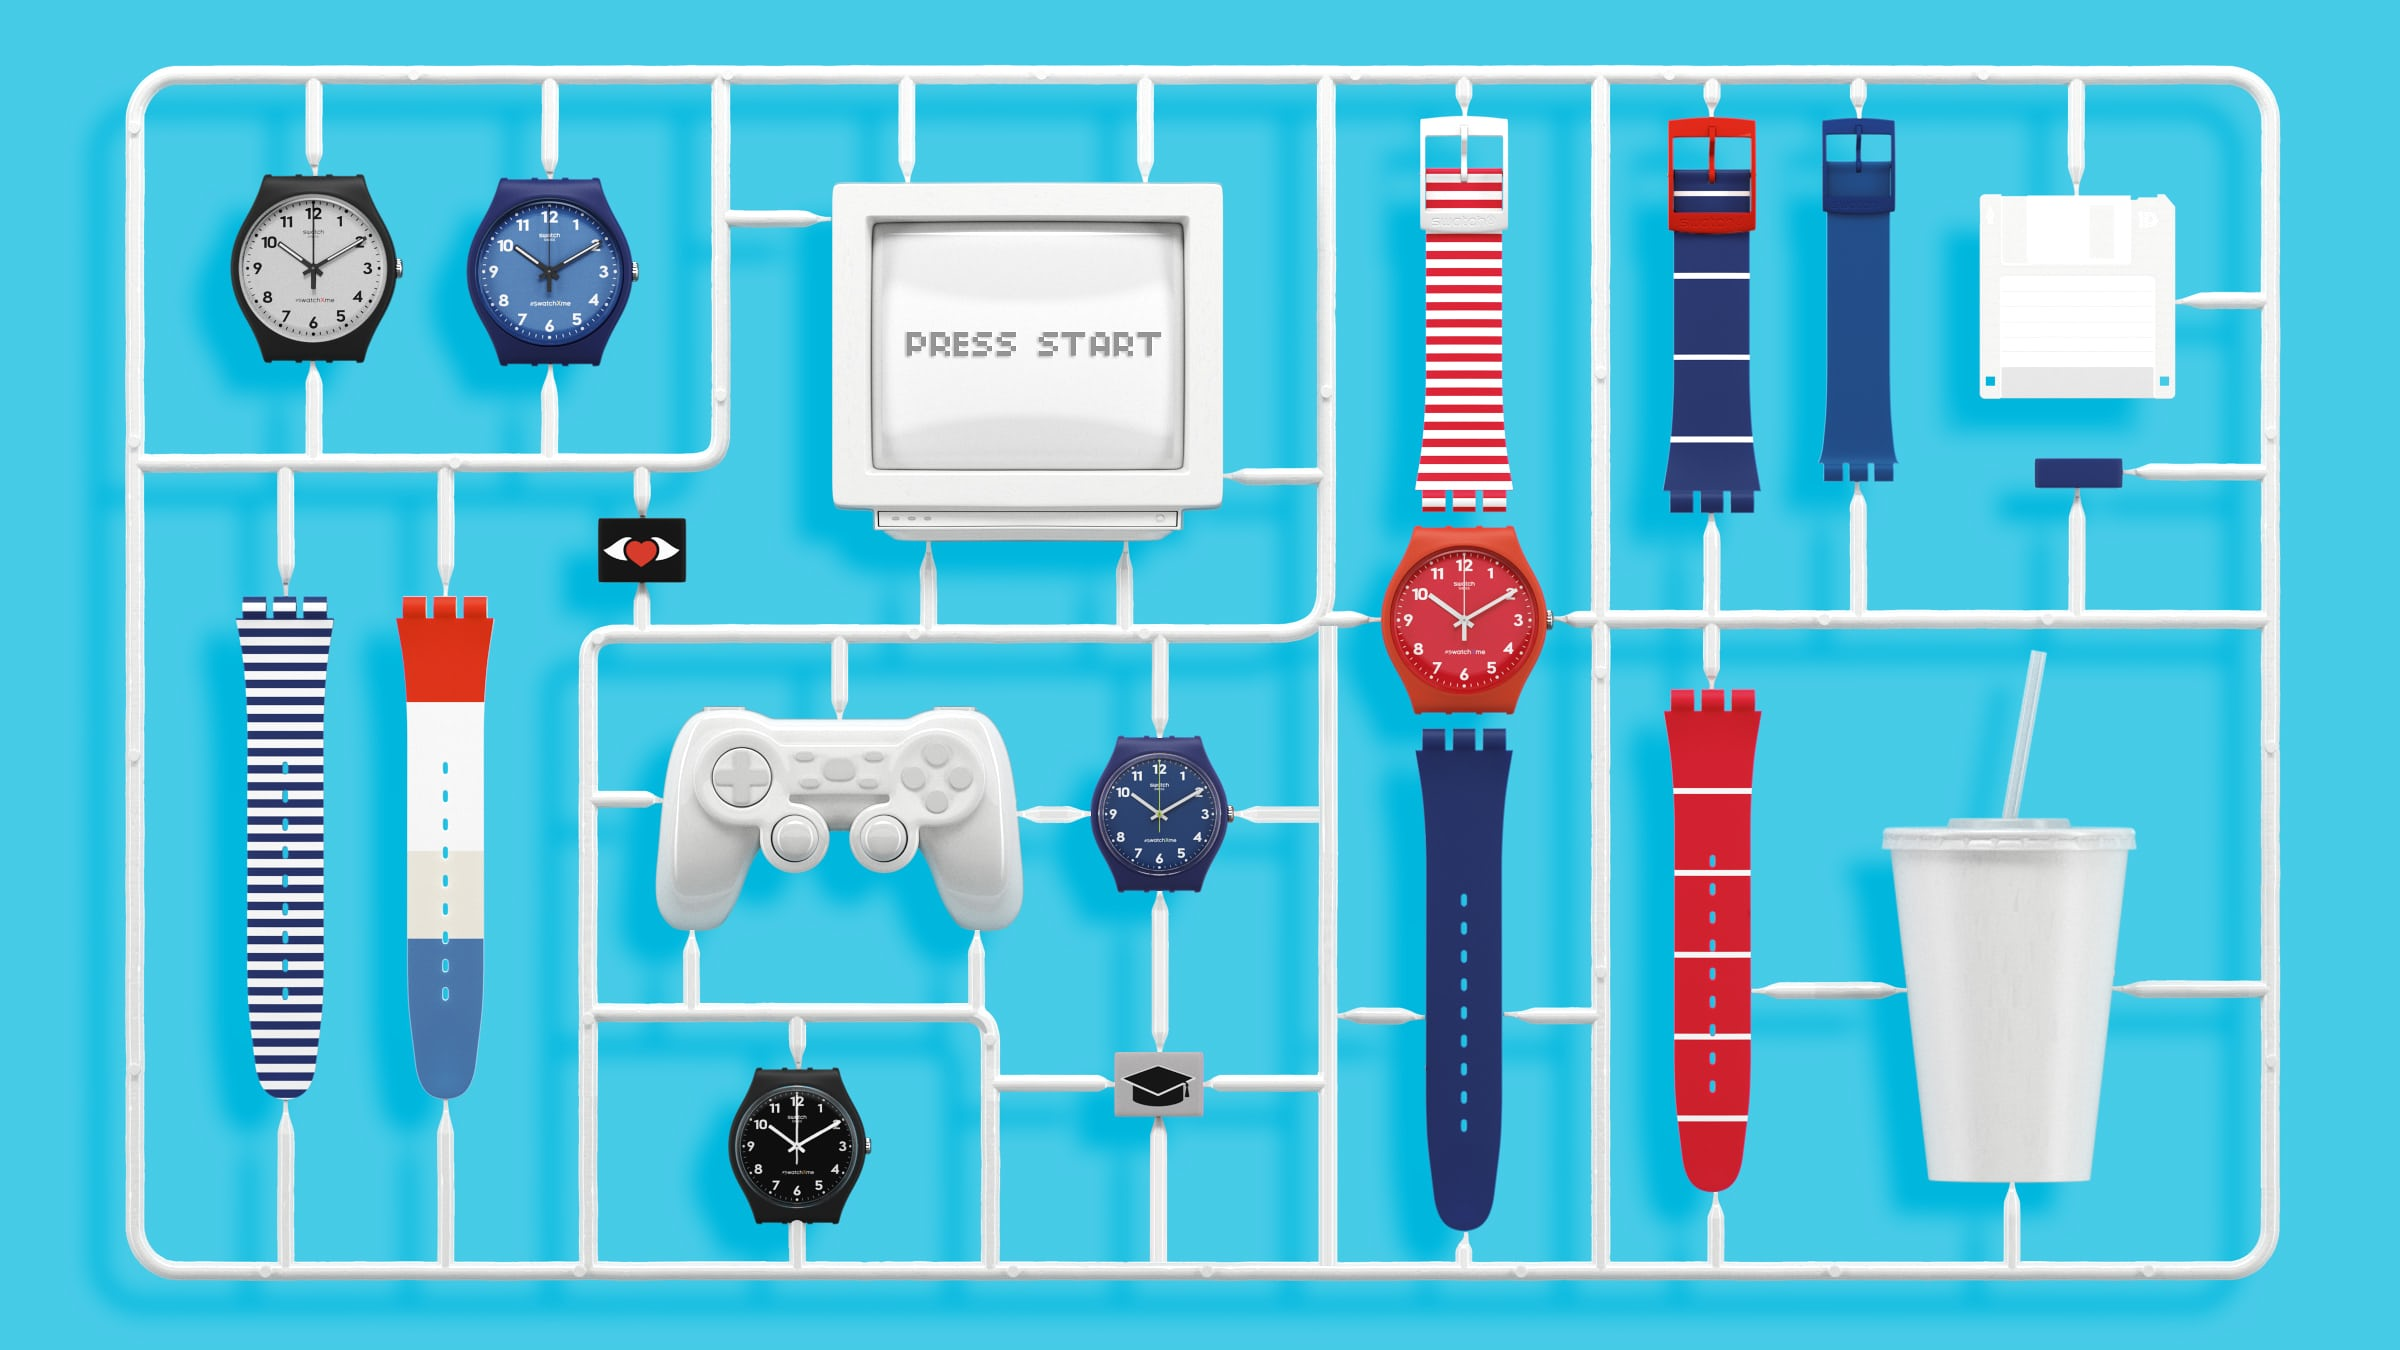 Introducing: The Swatch X You Lets You Design Your Own Custom Swatch -  HODINKEE